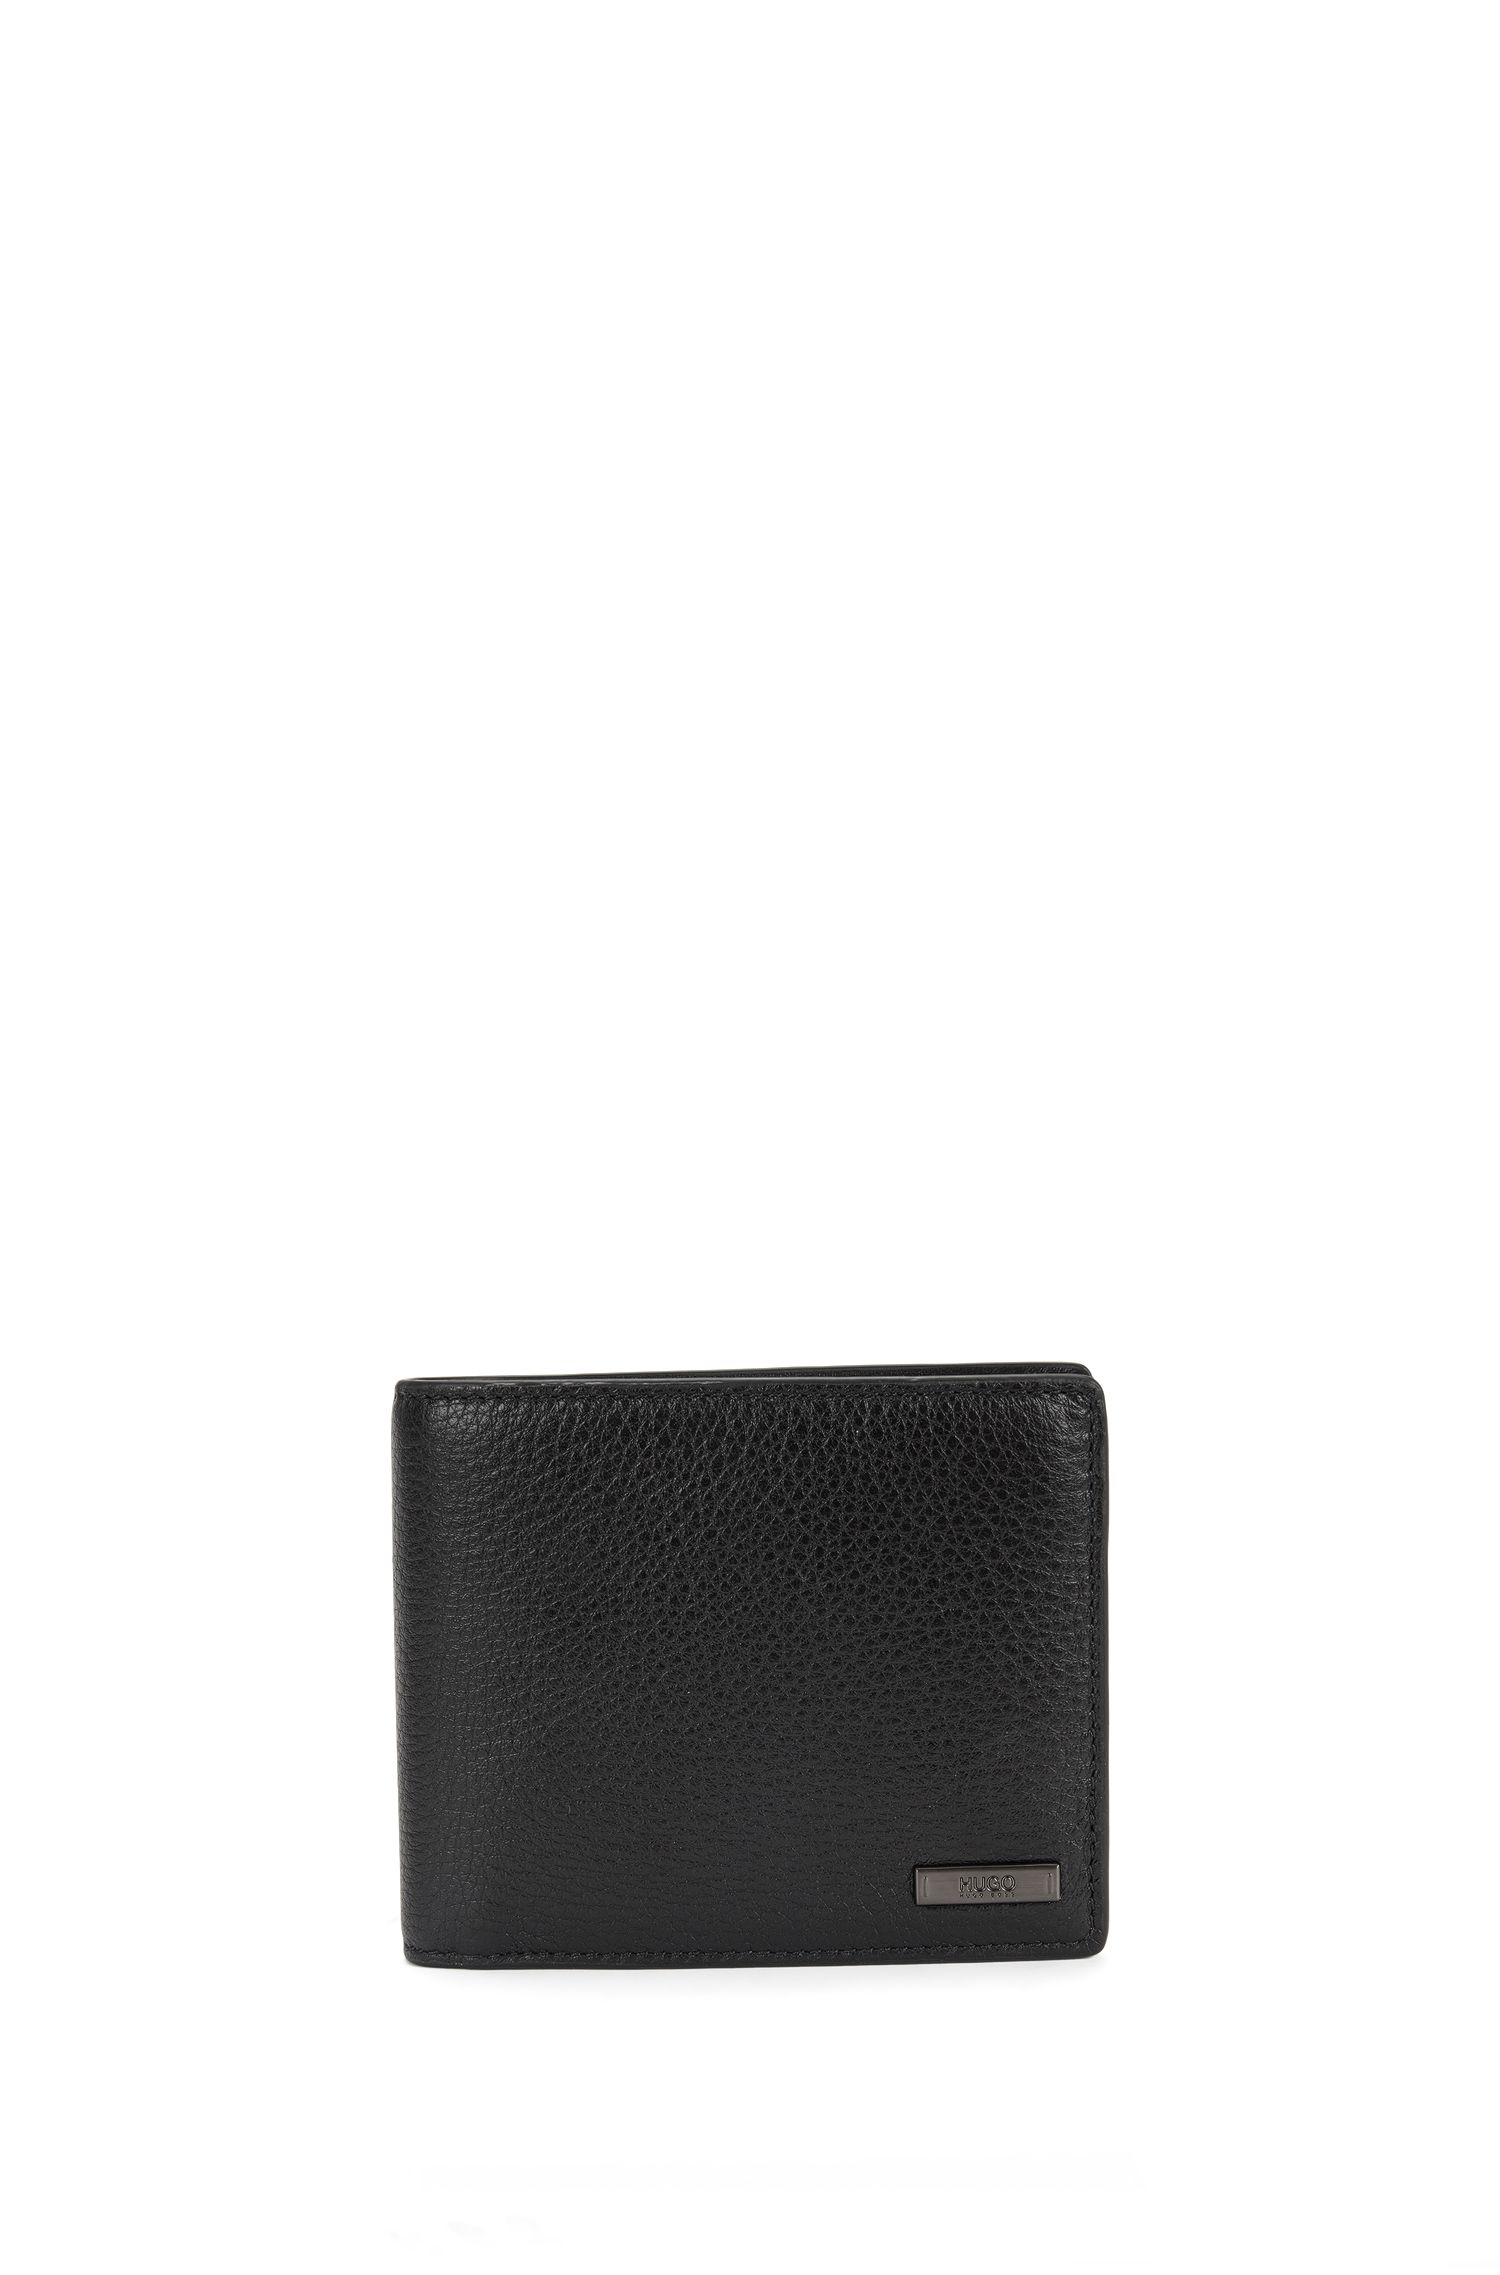 Trifold wallet in naturally grained leather